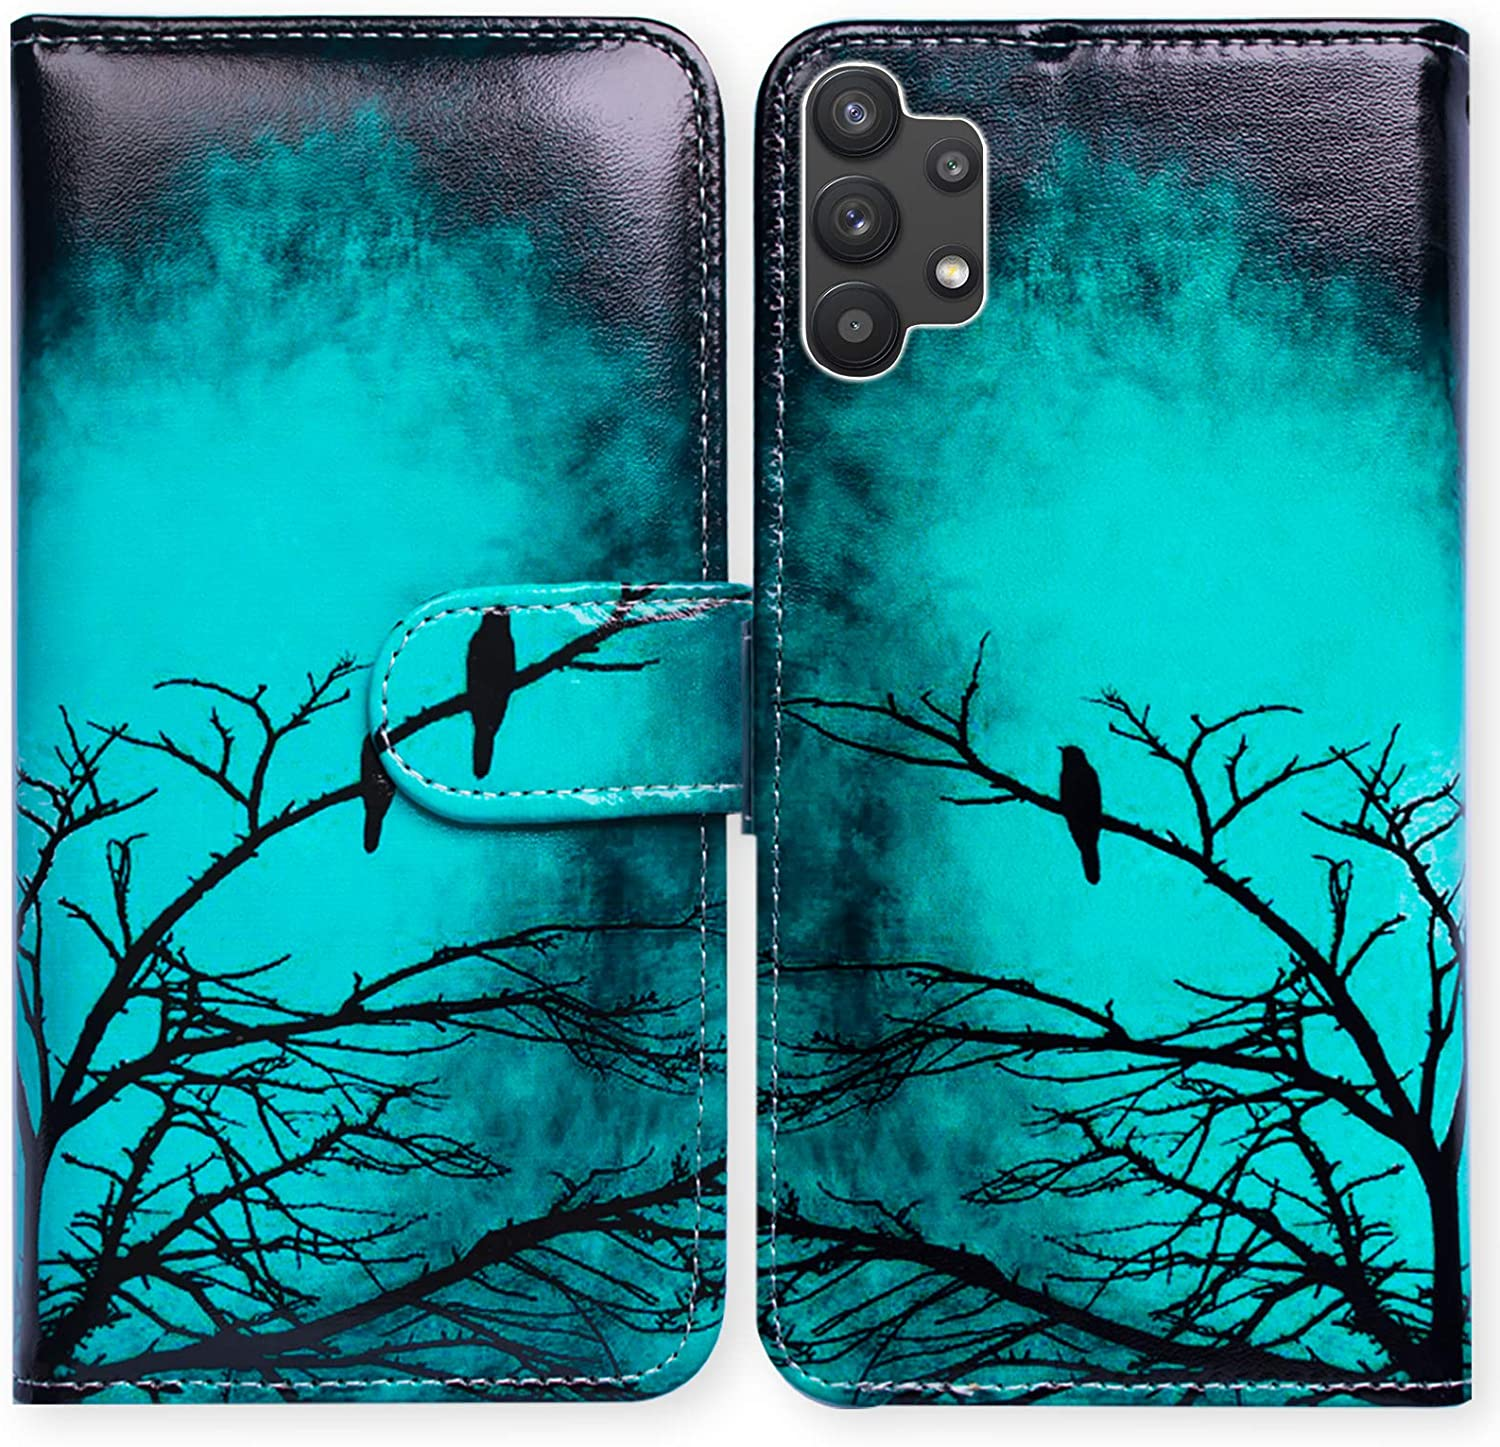 Galaxy A32 5G Case,Bcov Black Bird Green Leather Flip Phone Case Wallet Cover with Card Slot Holder Kickstand for Samsung Galaxy A32 5G 2021